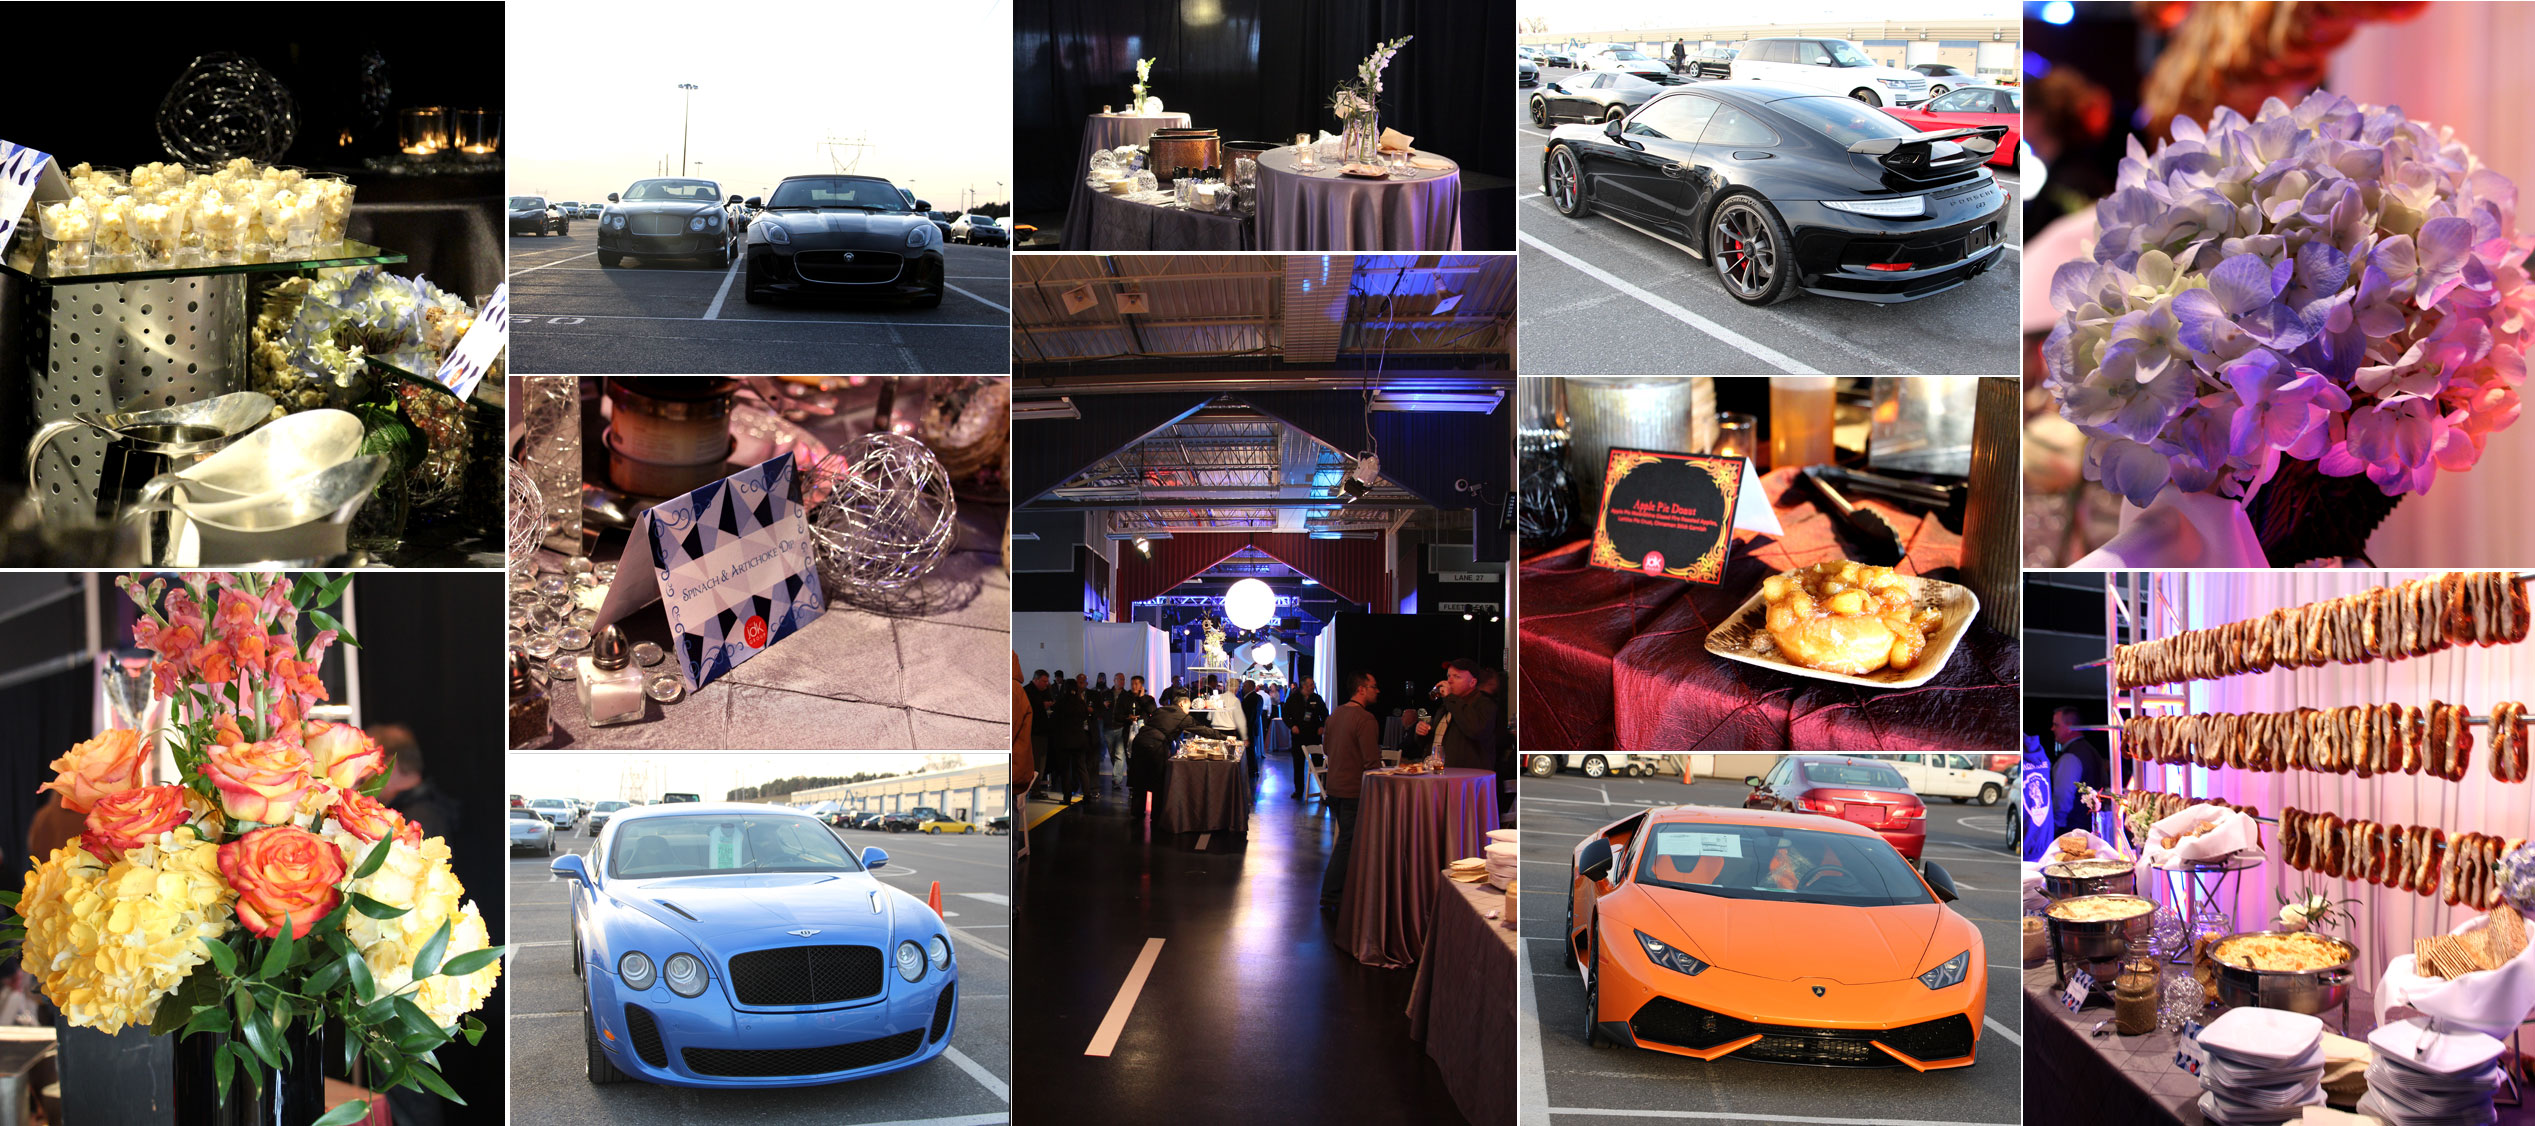 Going Once Going Twice Manheim Auto Auction Charity Gala